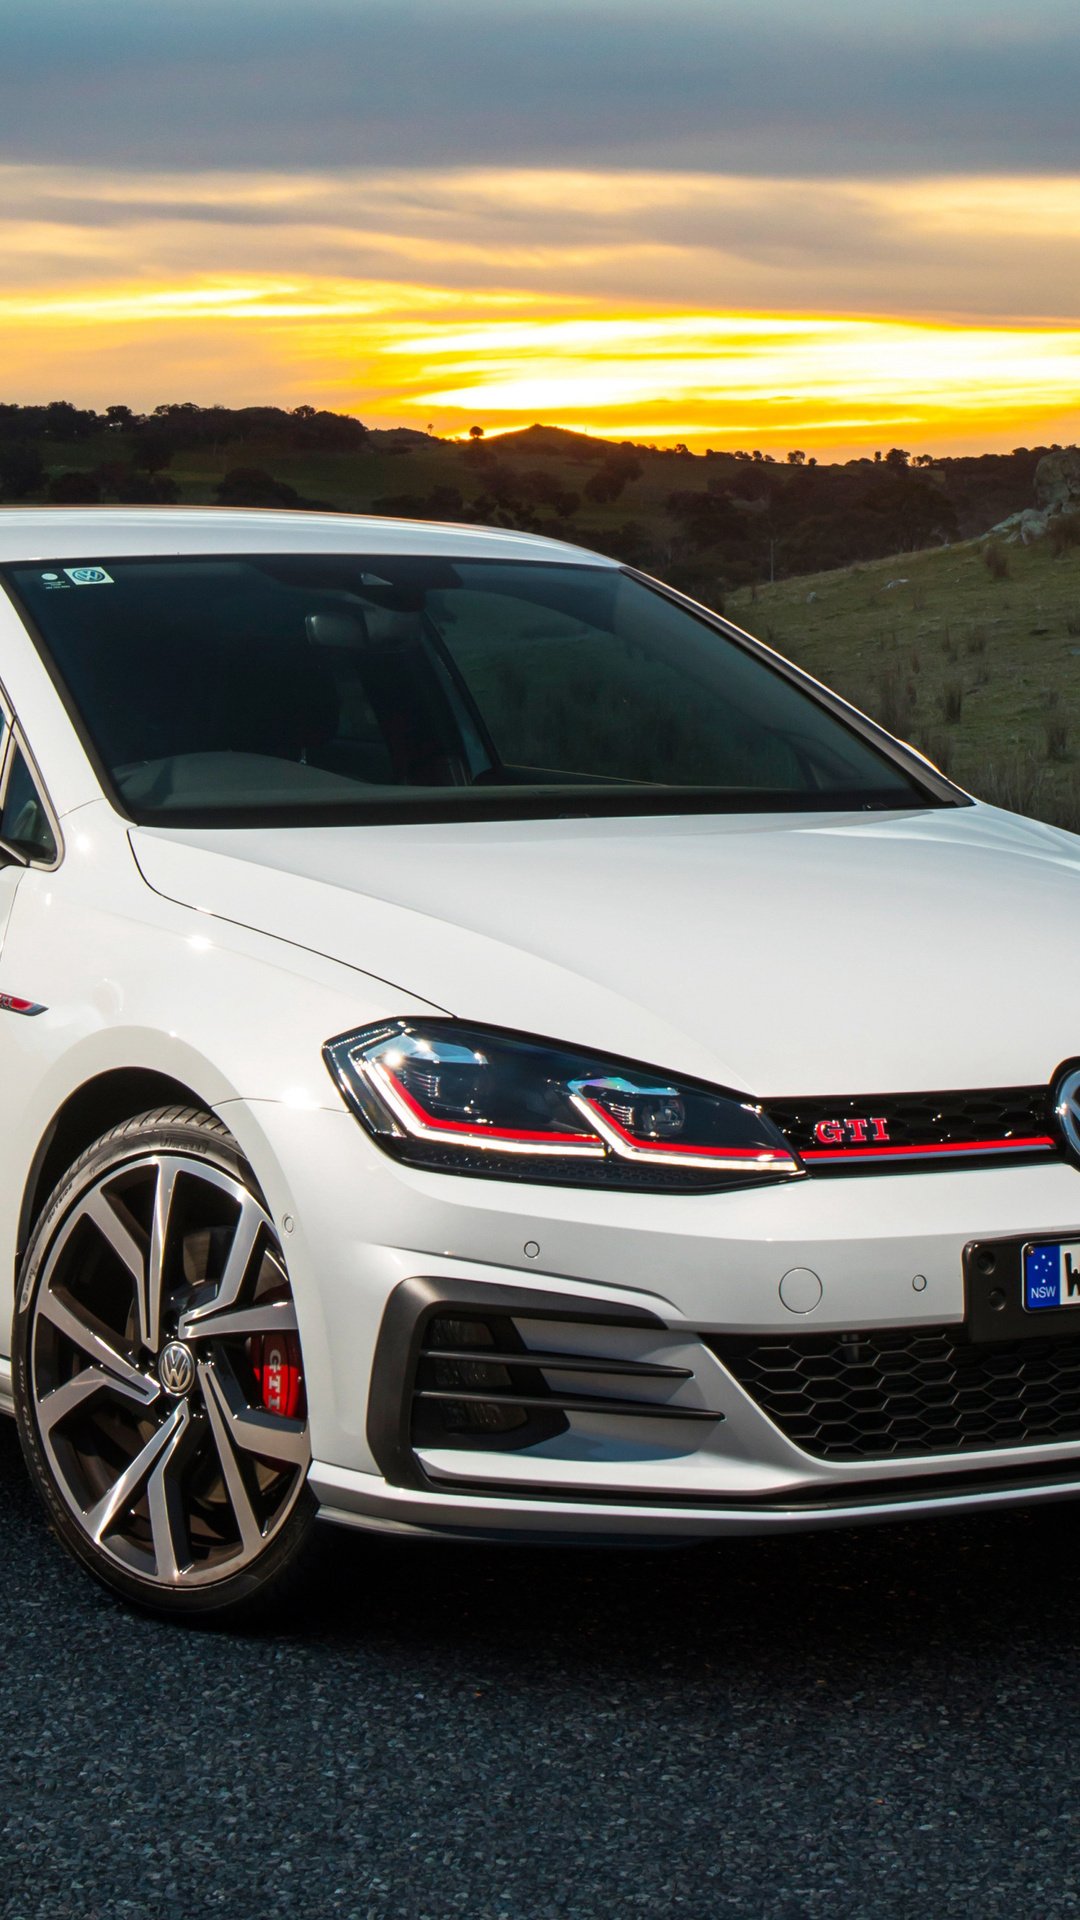 Volkswagen Golf Gti Performance Edition 2017 M1